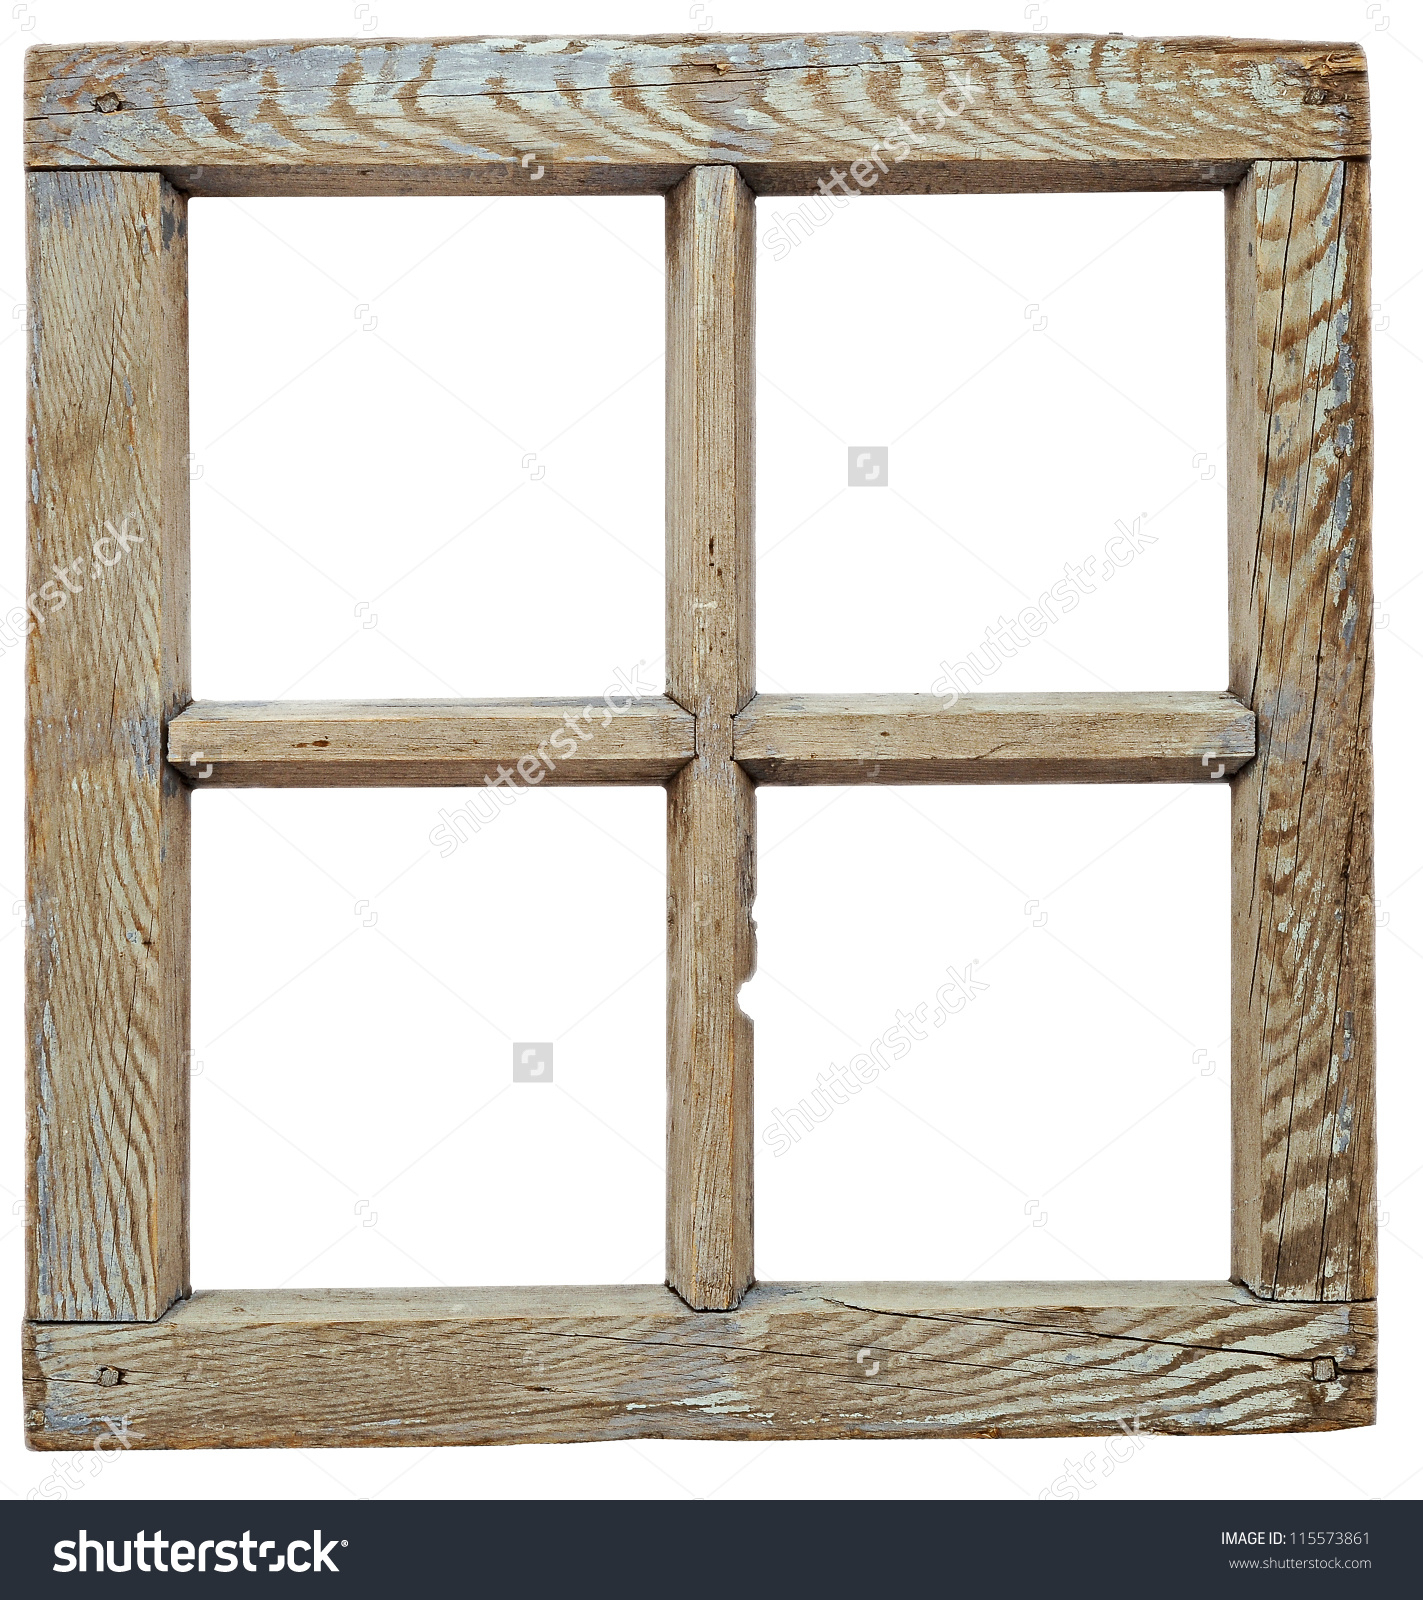 Old Wooden Window Frames With Best Ways To Use Windows As intended for Old Rustic Barn Window Frame (Image 21 of 30)